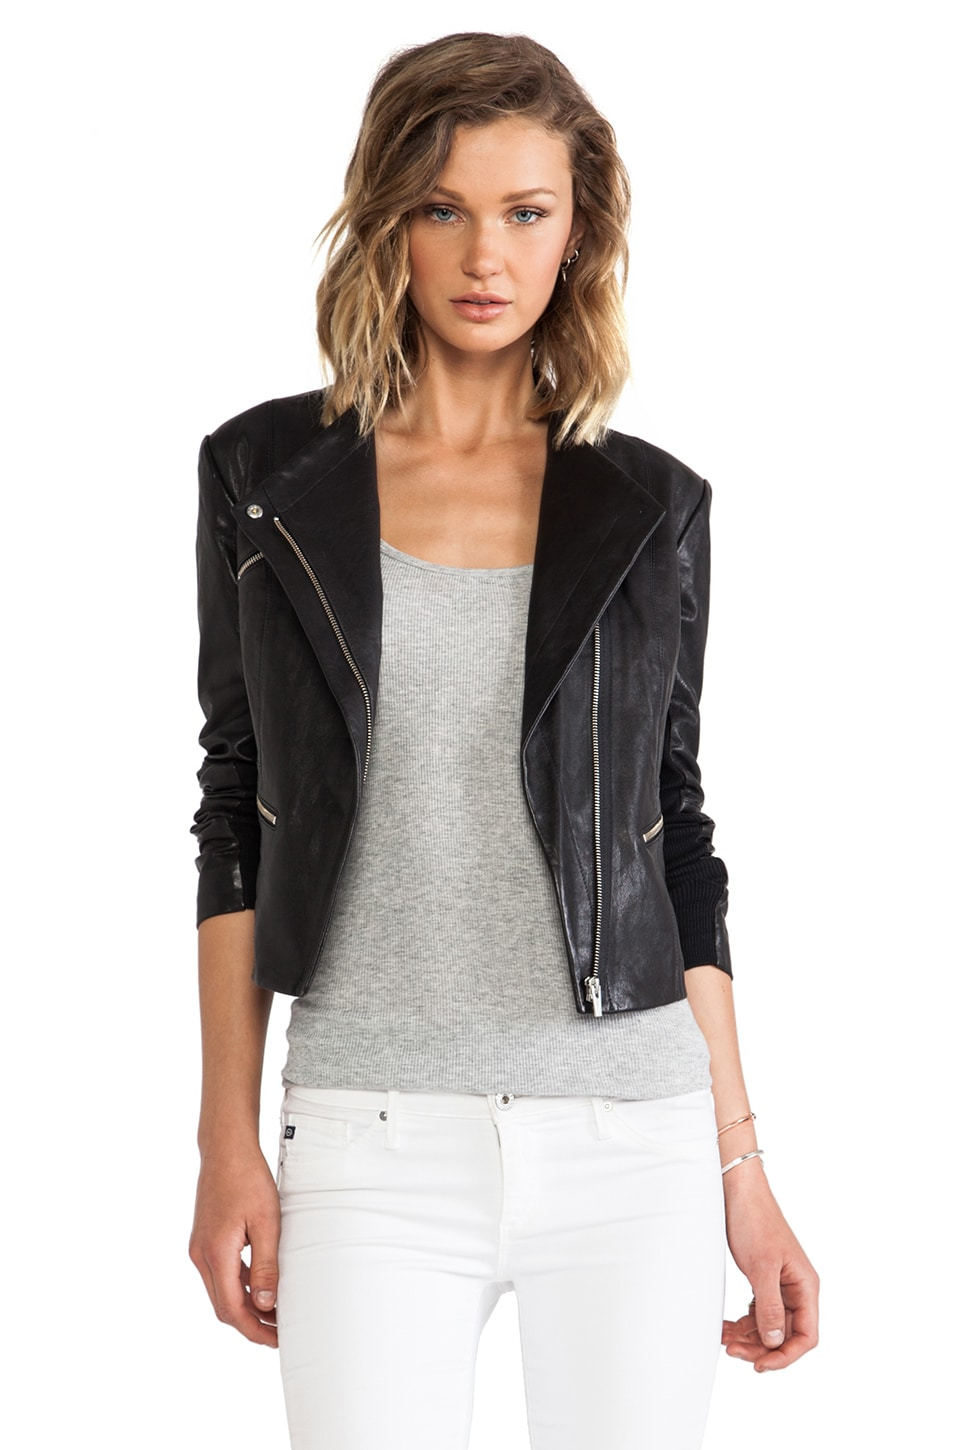 VEDA James Jacket in Black